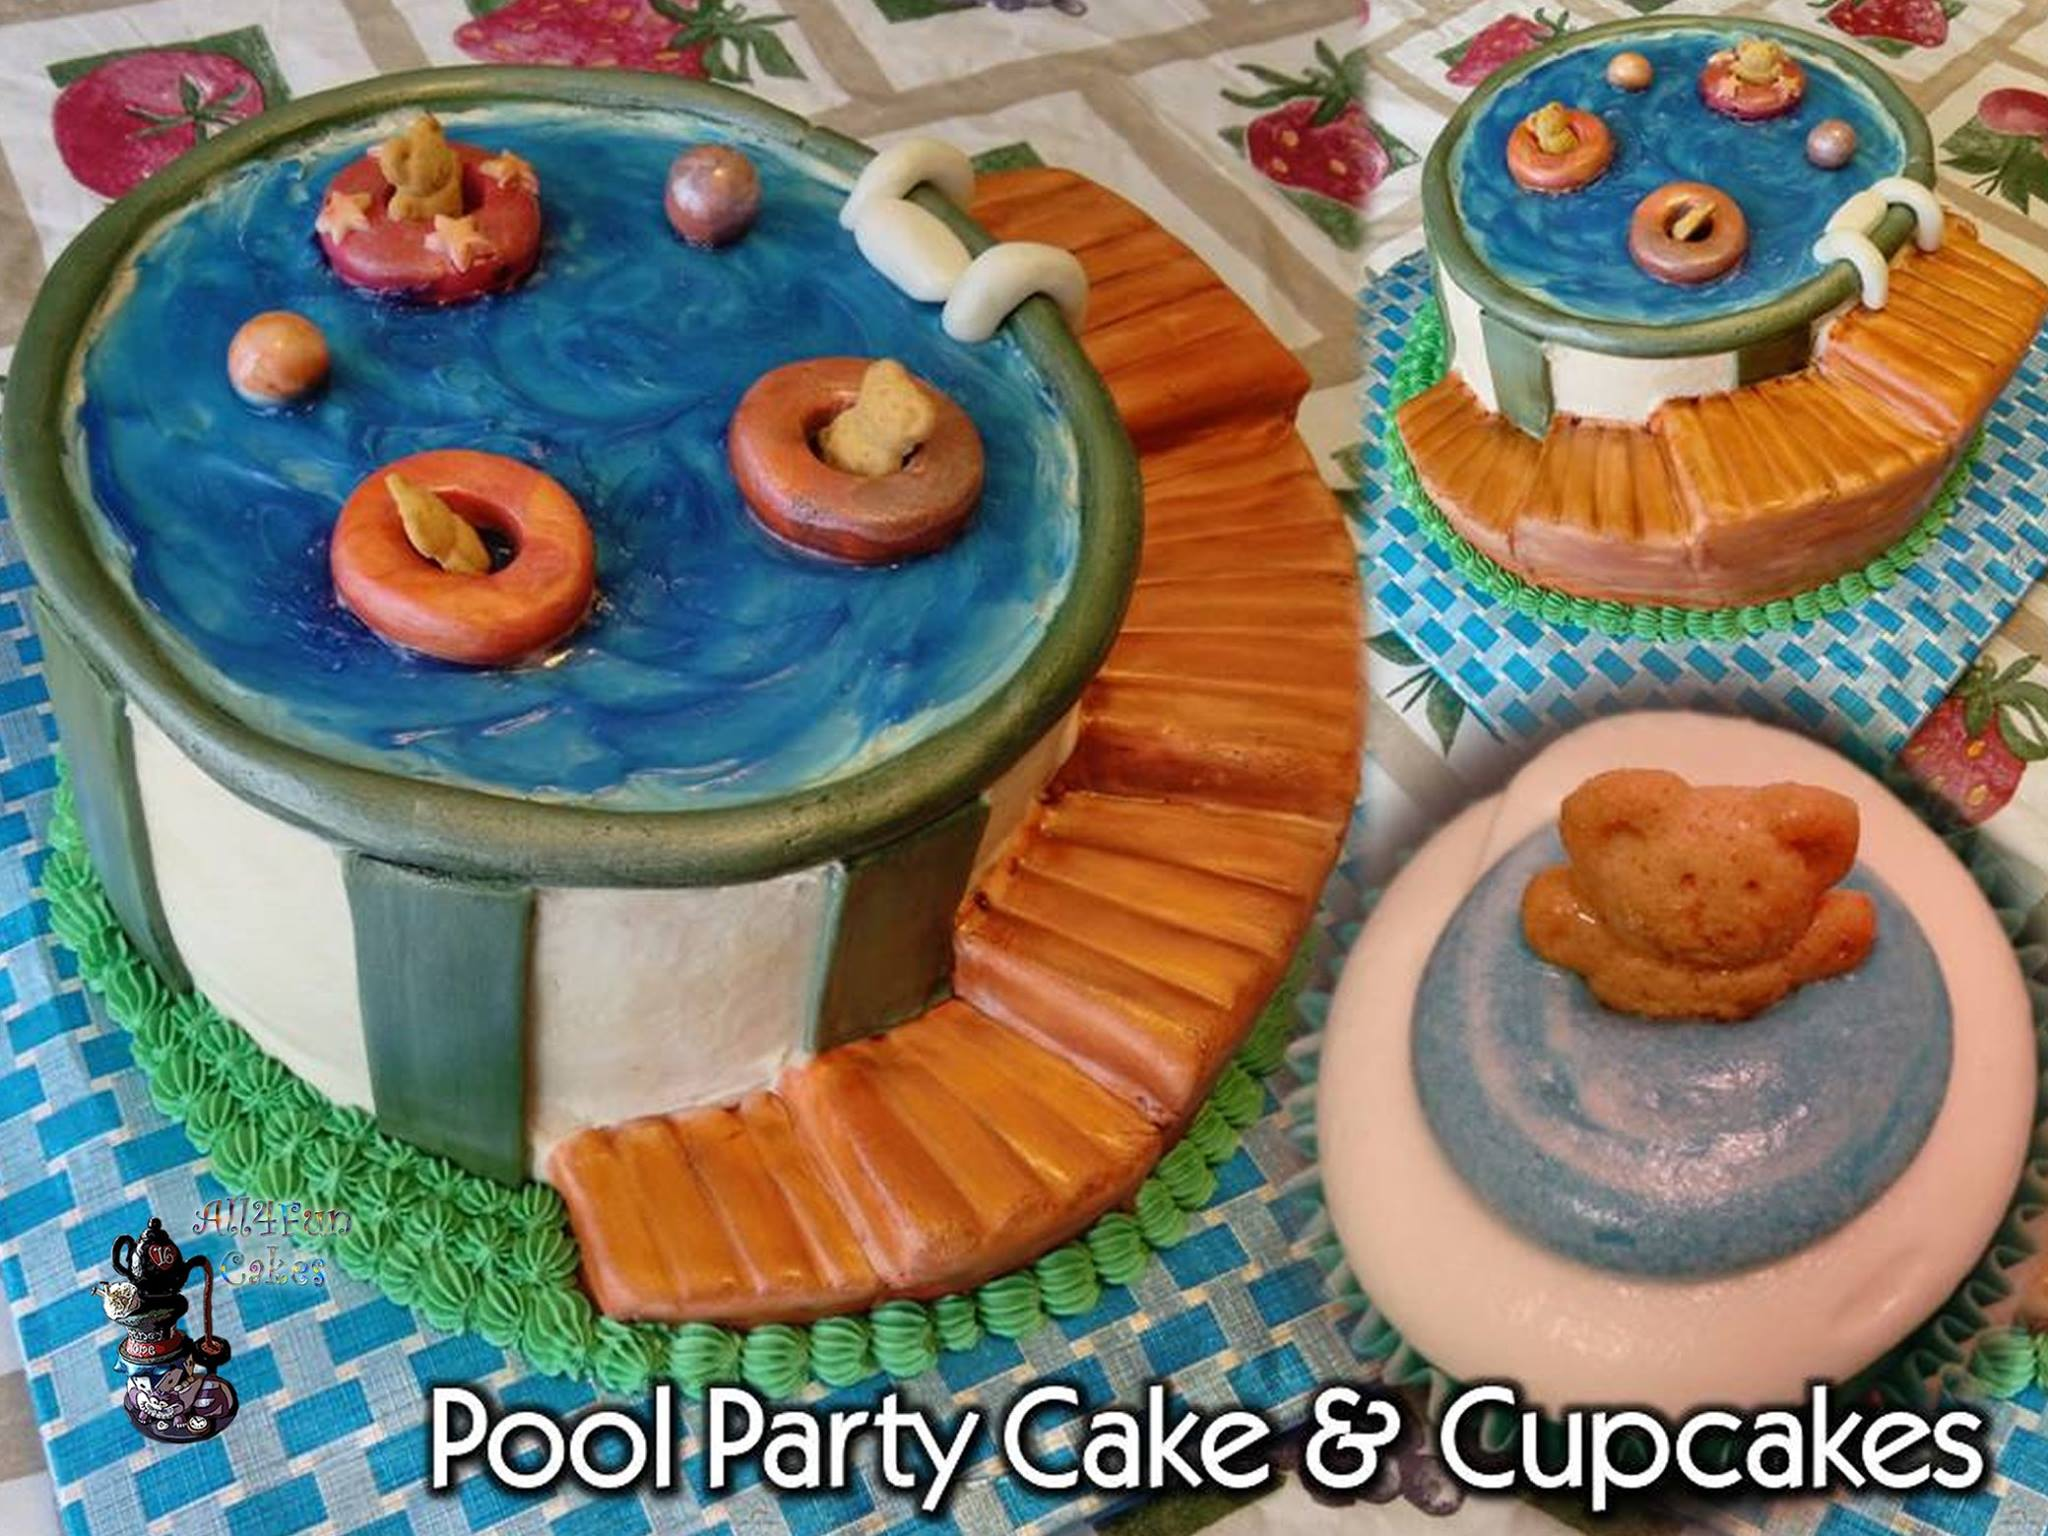 Birthday Holiday Party Special Occasion Teddy Swimming Pool Party Cake with matching Cupcakes by All4Fun Cakes LLC